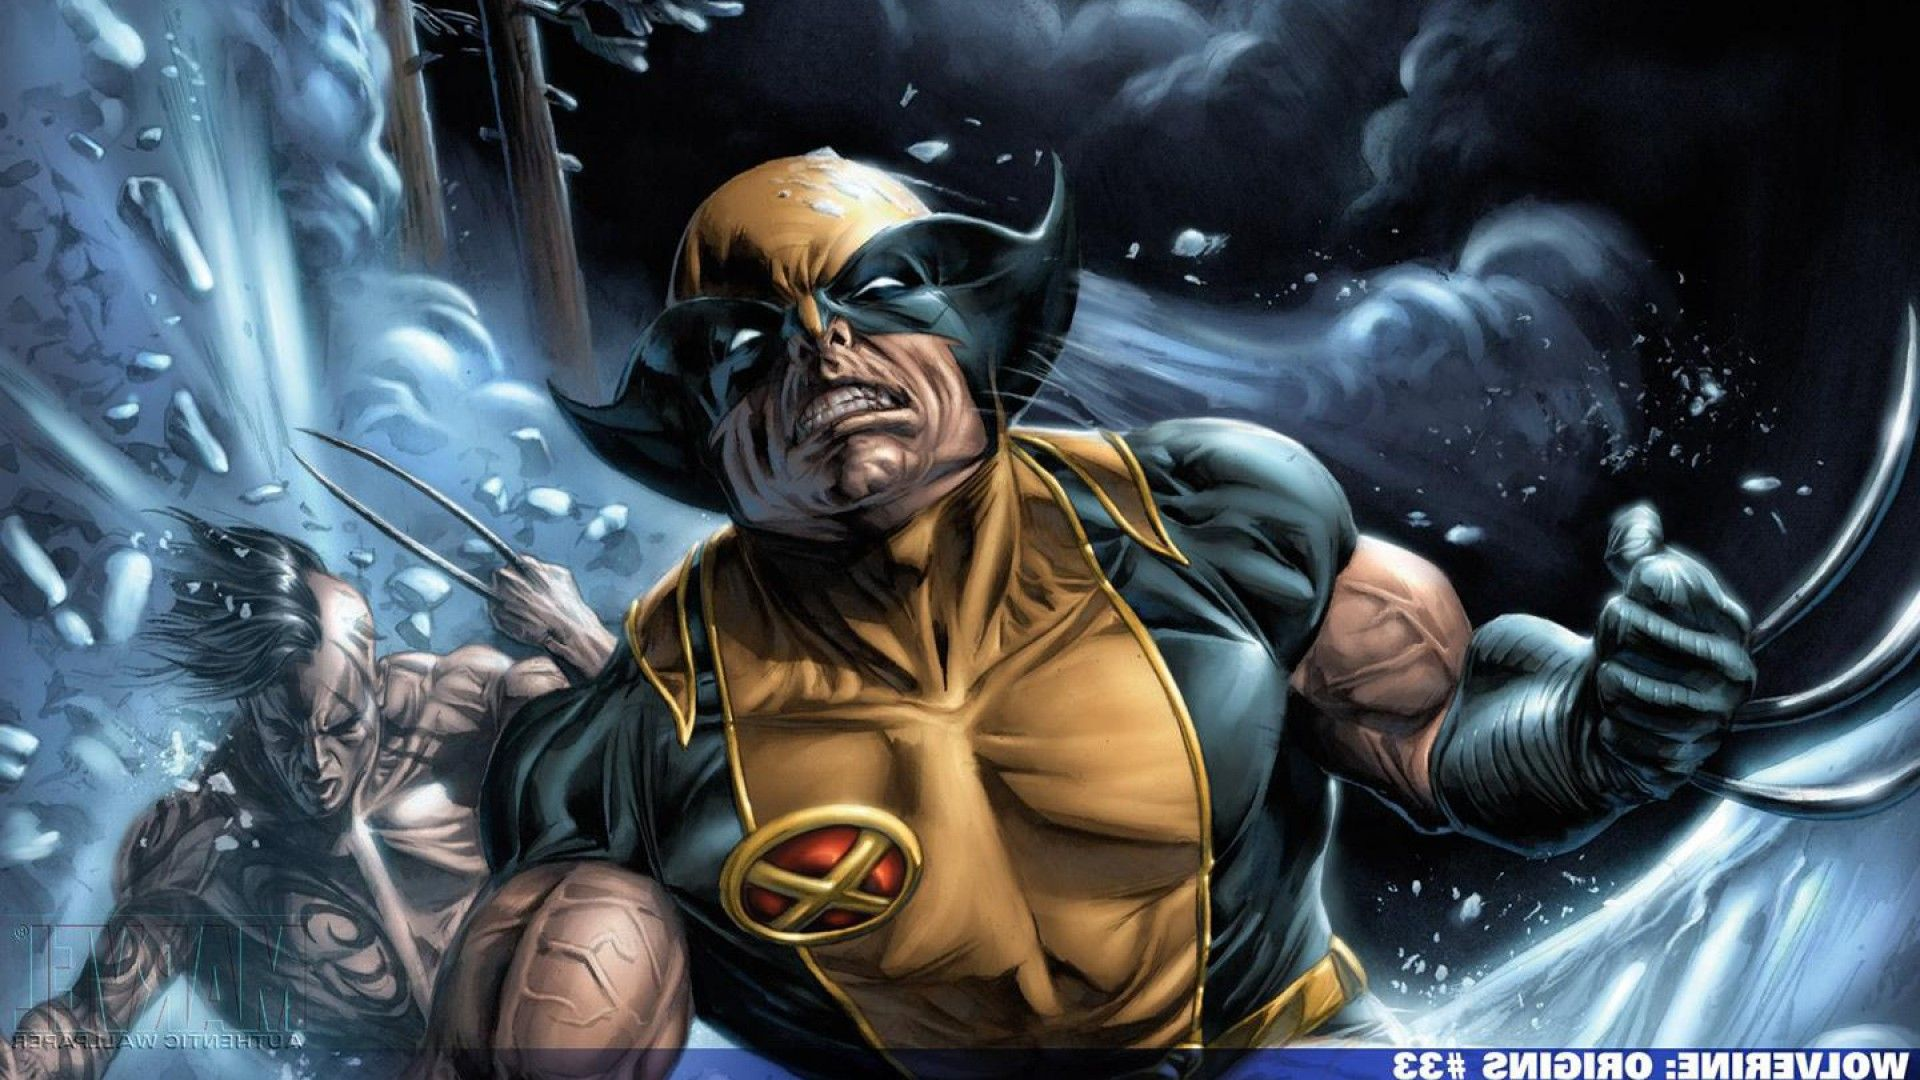 Top Wallpaper Marvel Wolverine - 678a4d89113024a1237fa3bfad6379c5  2018_96815.jpg